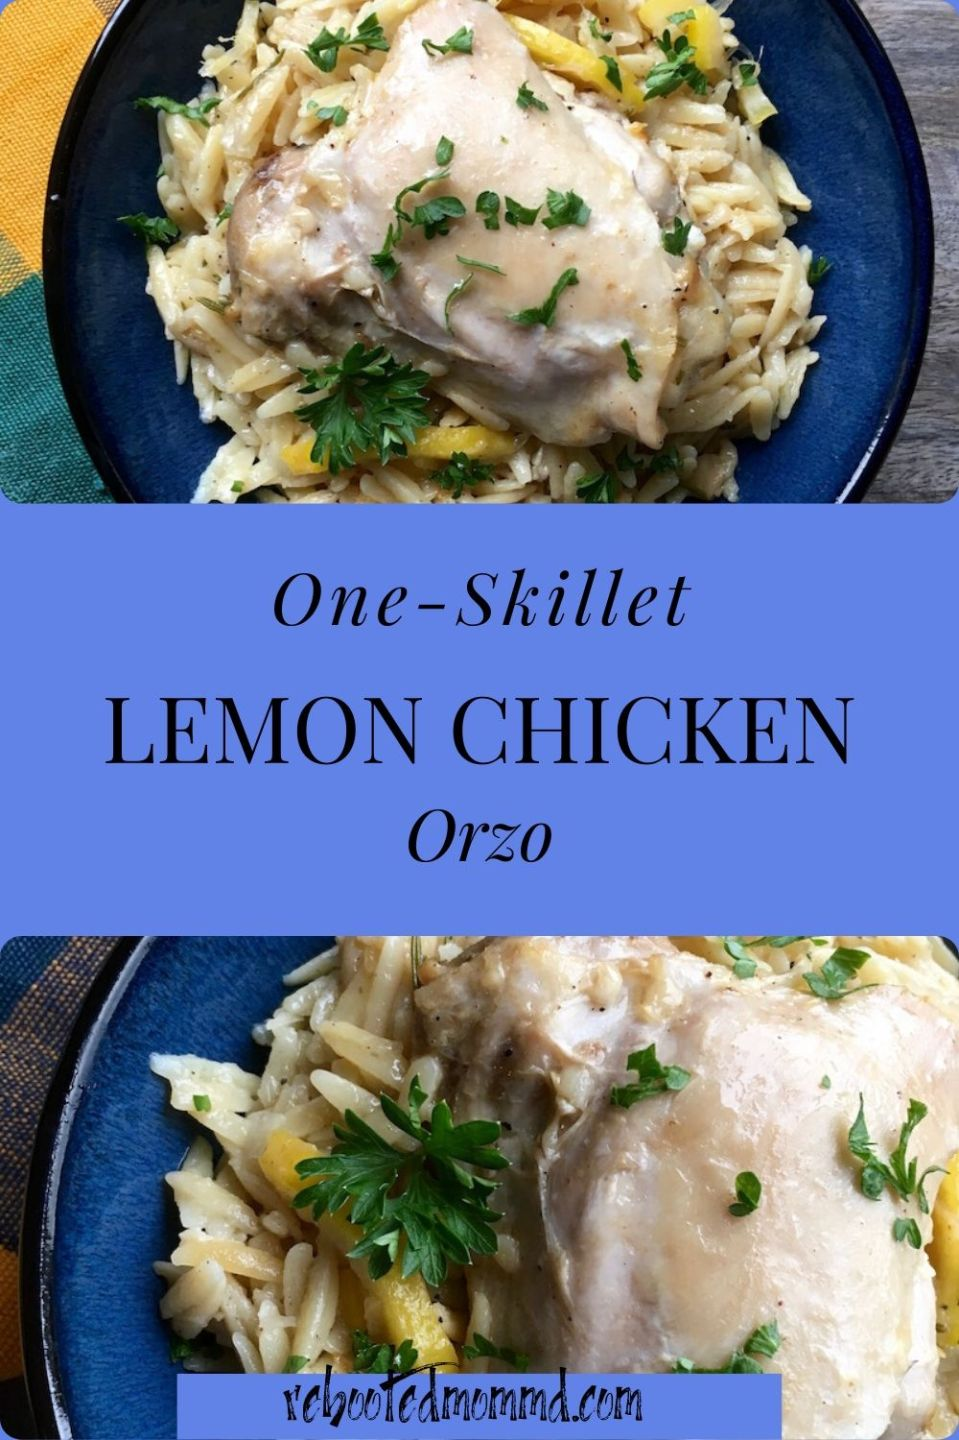 Comfort Food: One-Skillet Lemon Chicken Orzo